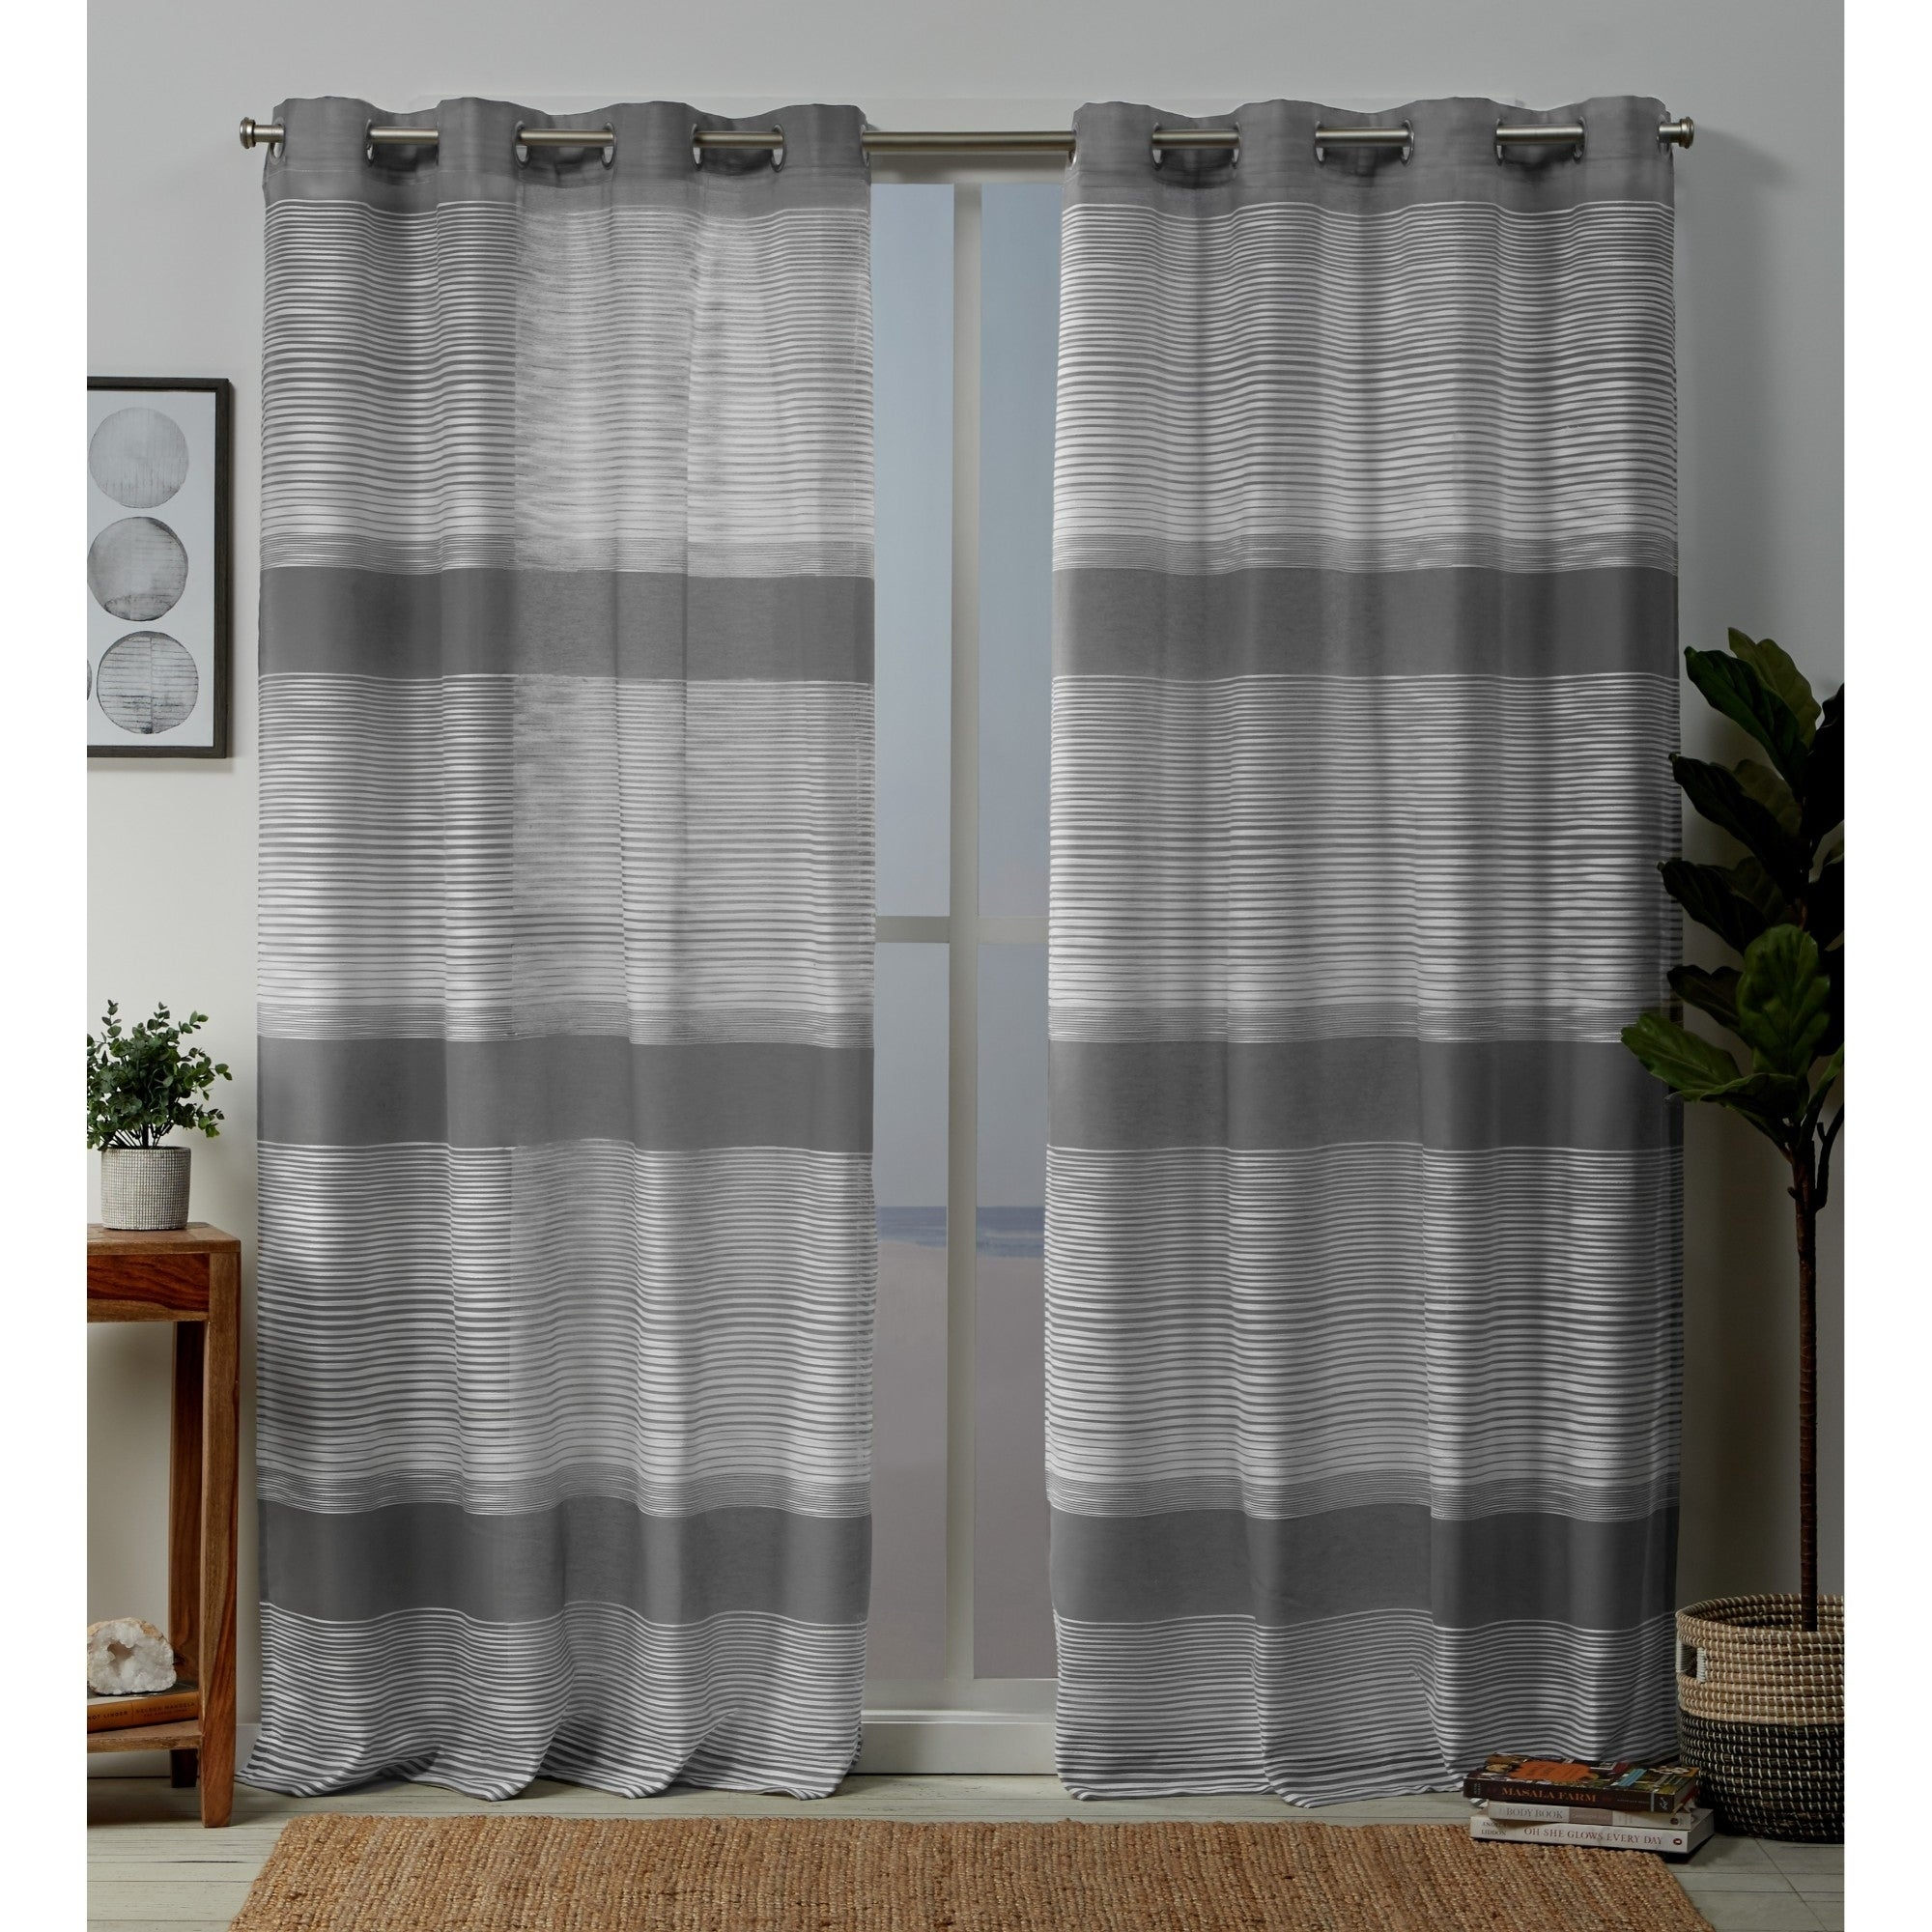 Copper Grove Panagyurishte Striped Grommet Top Curtain Panel Pair In Ocean Striped Window Curtain Panel Pairs With Grommet Top (View 16 of 20)